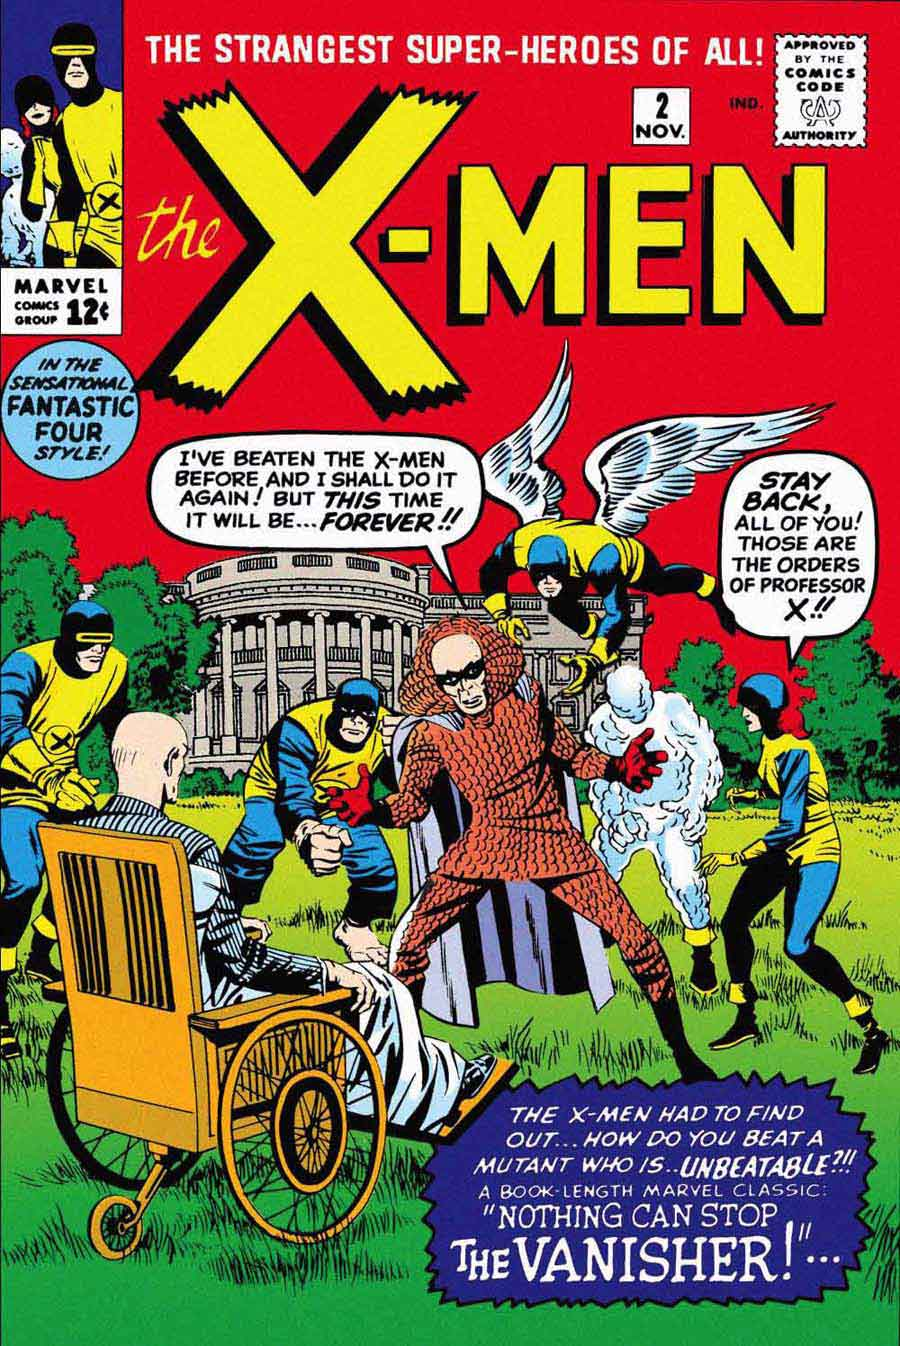 Arcs & Runs #47 | Twins Part 1: The Avengers & The X-Men